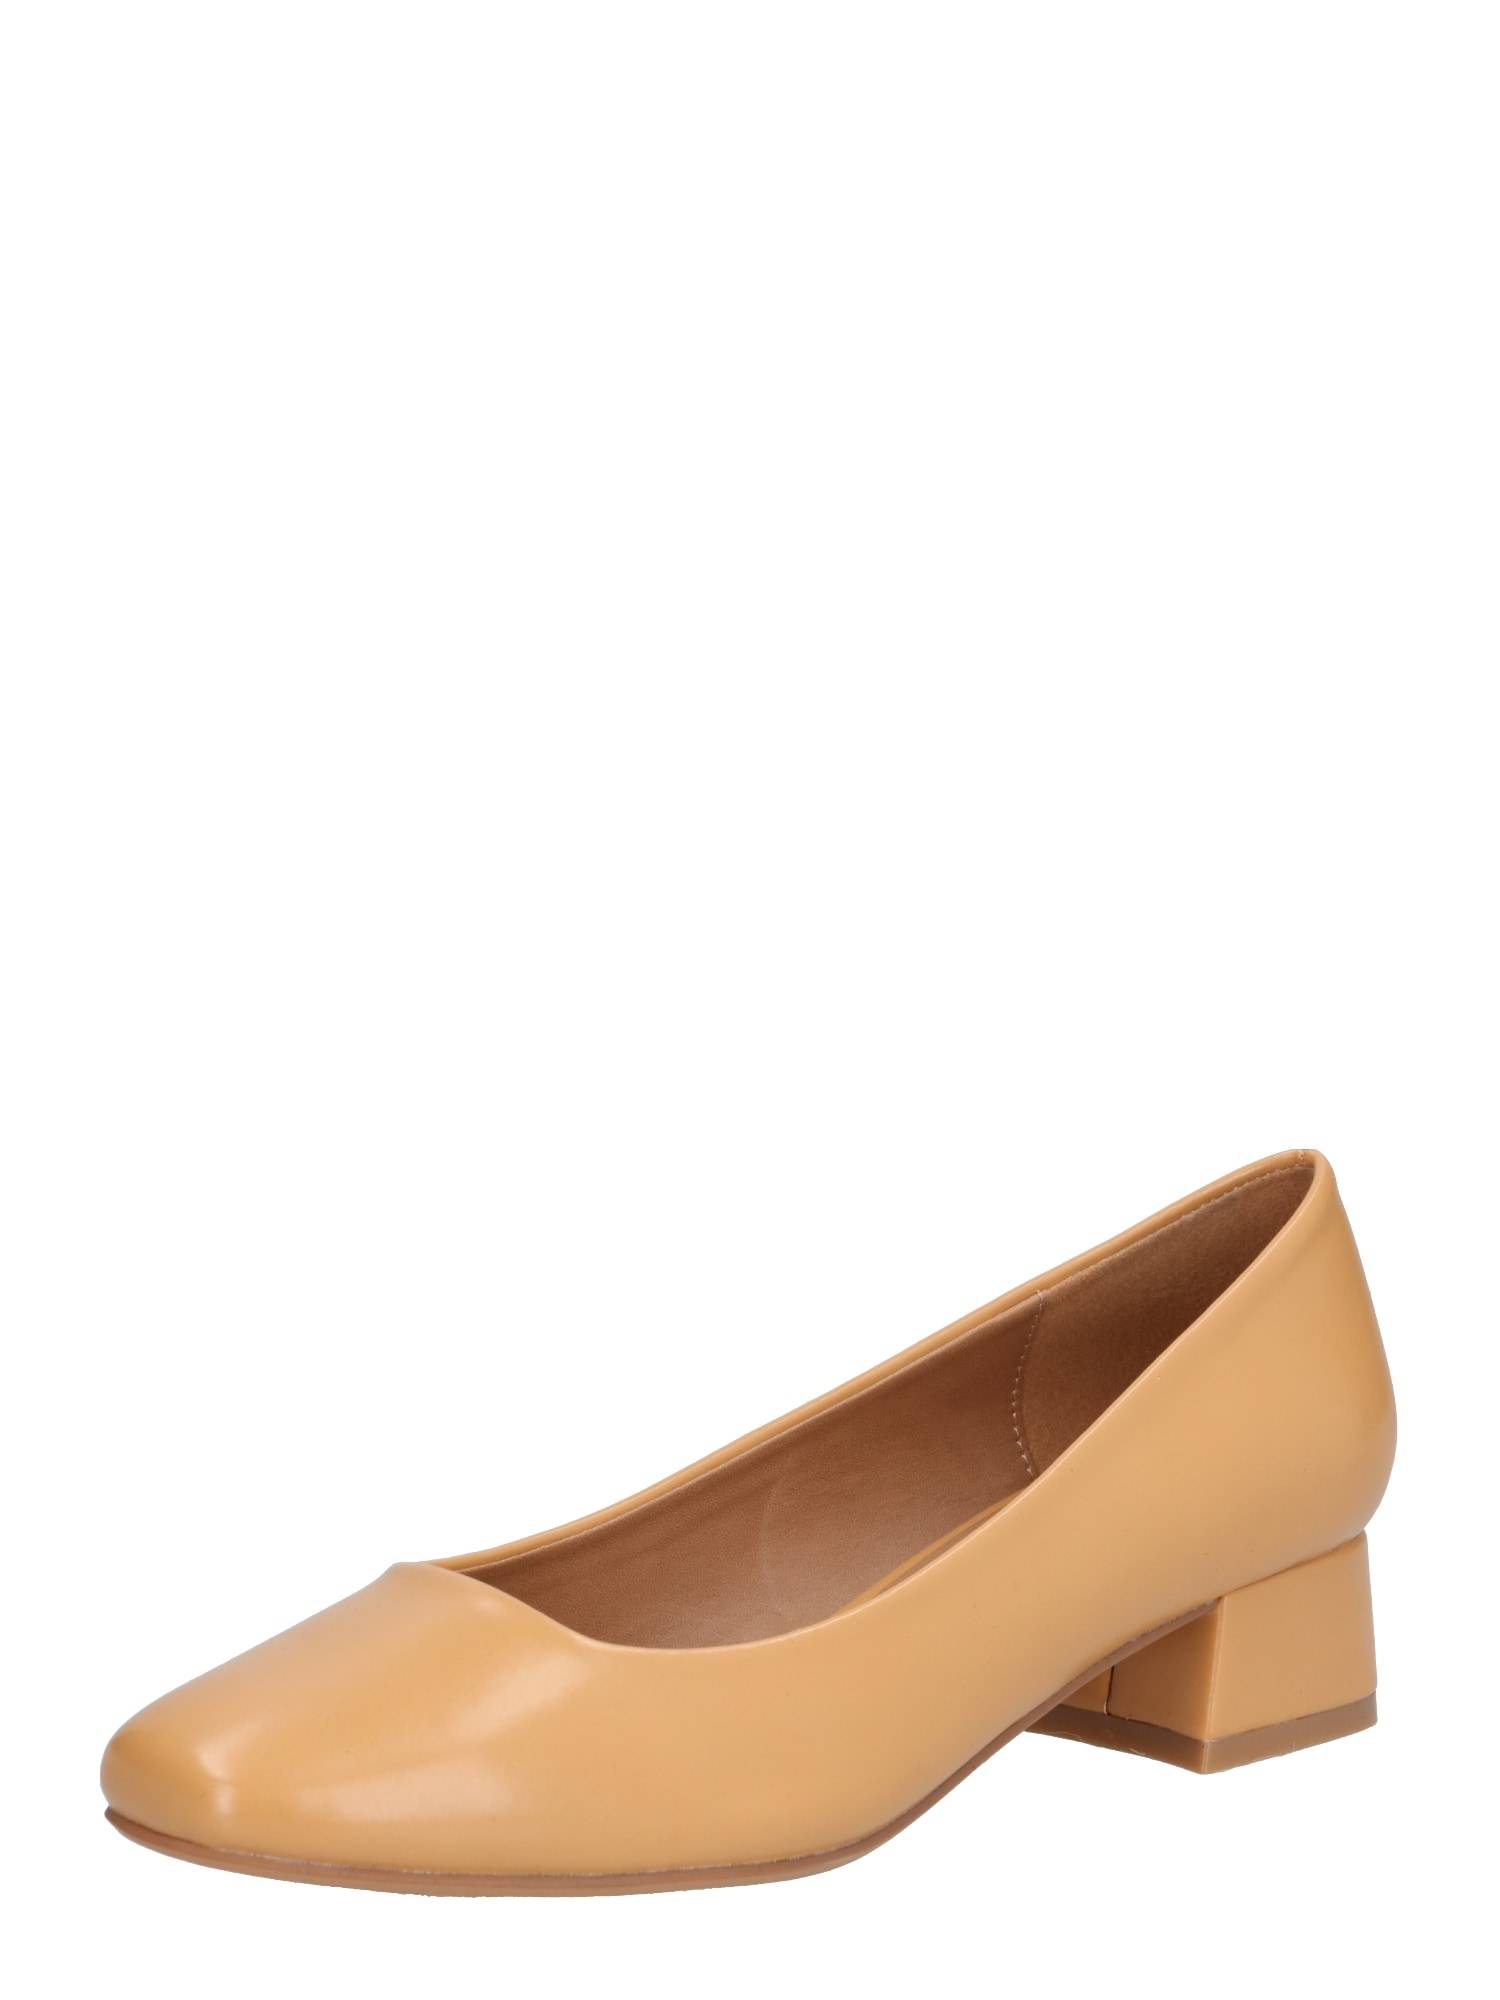 ABOUT YOU Escarpins 'Fiona'  - Beige - Taille: 41 - female